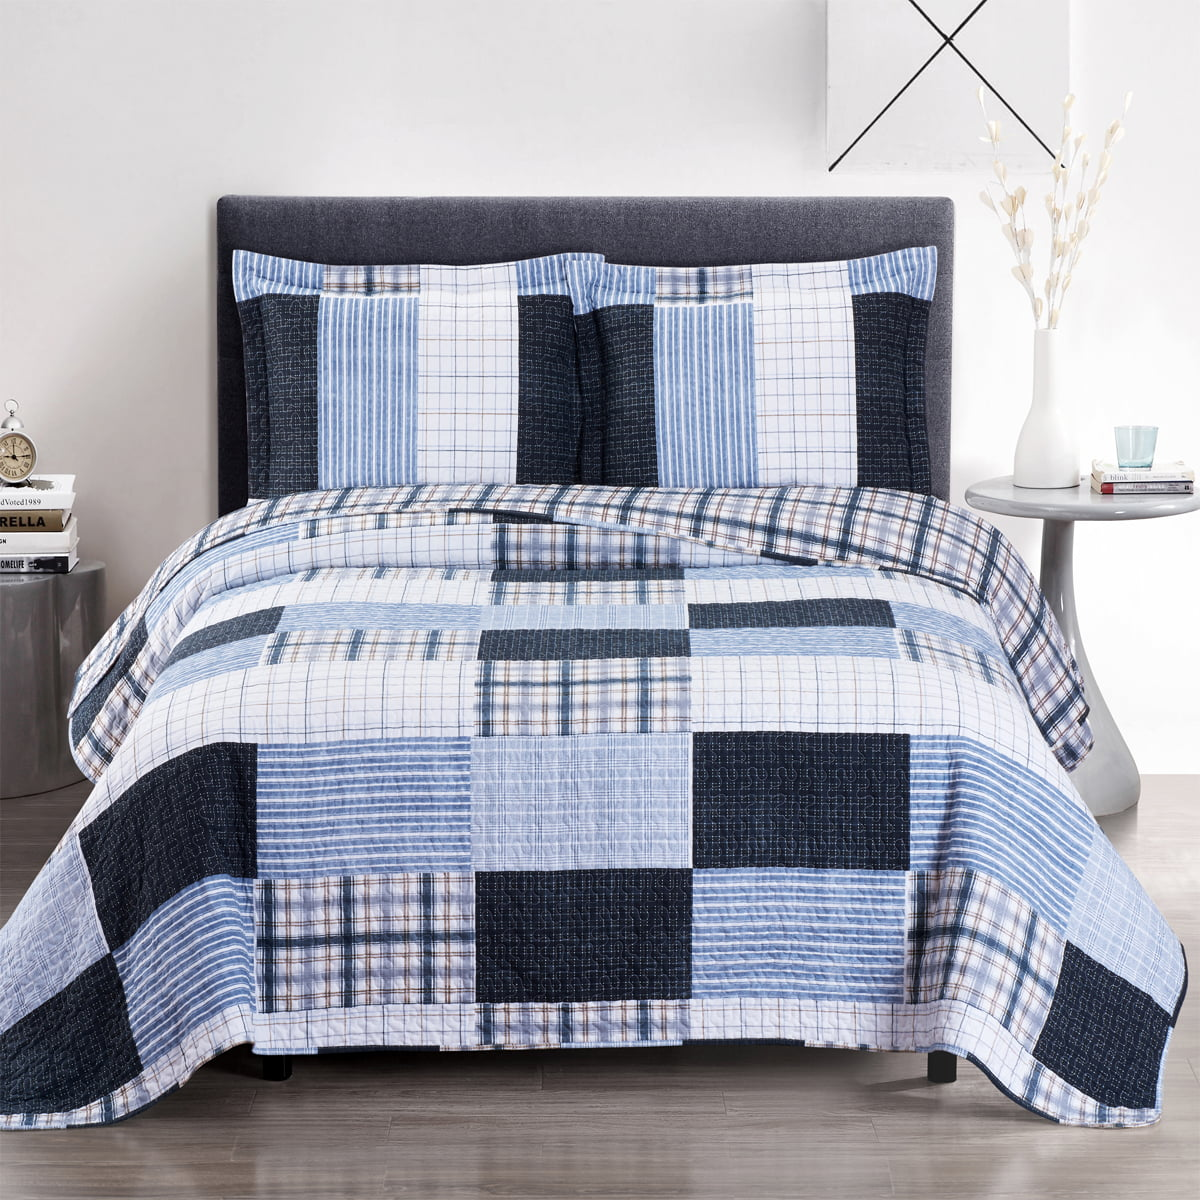 Zoe Oversize Coverlet Printed Patchwork Bed Quilt Set Wrinkle-Free & Easy Care Set by Royal Plaza Textiles, Inc.